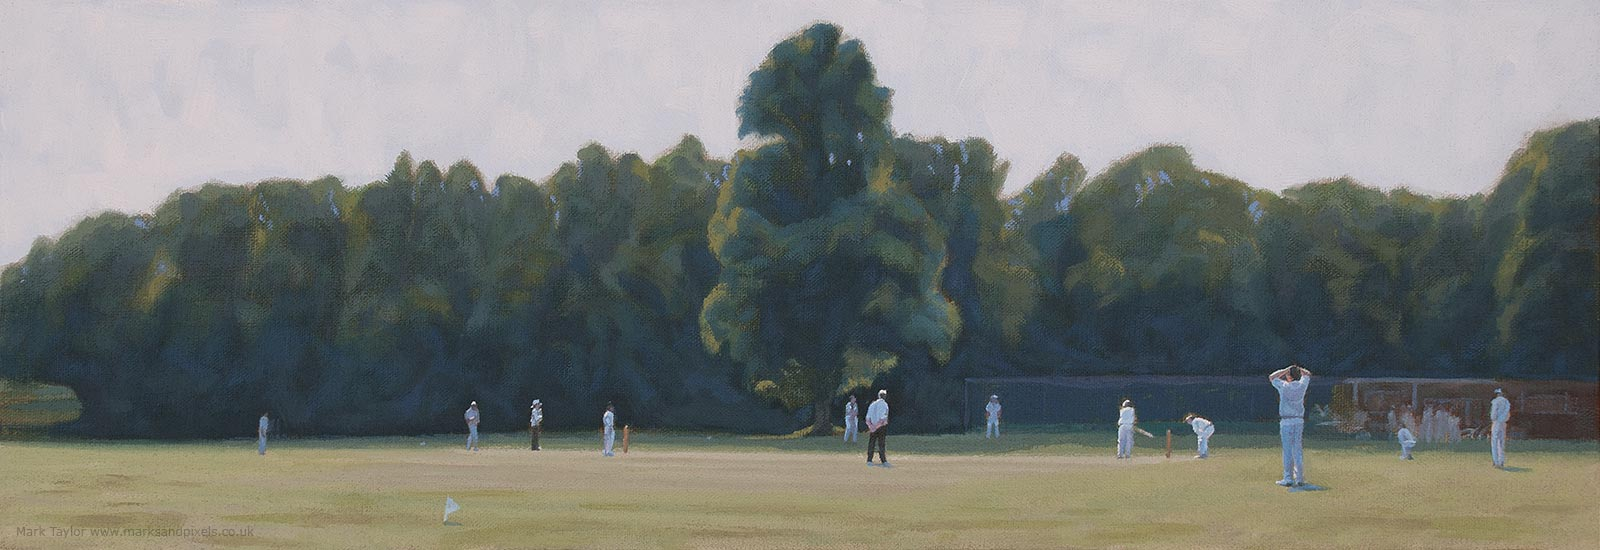 cricket on chorleywood common